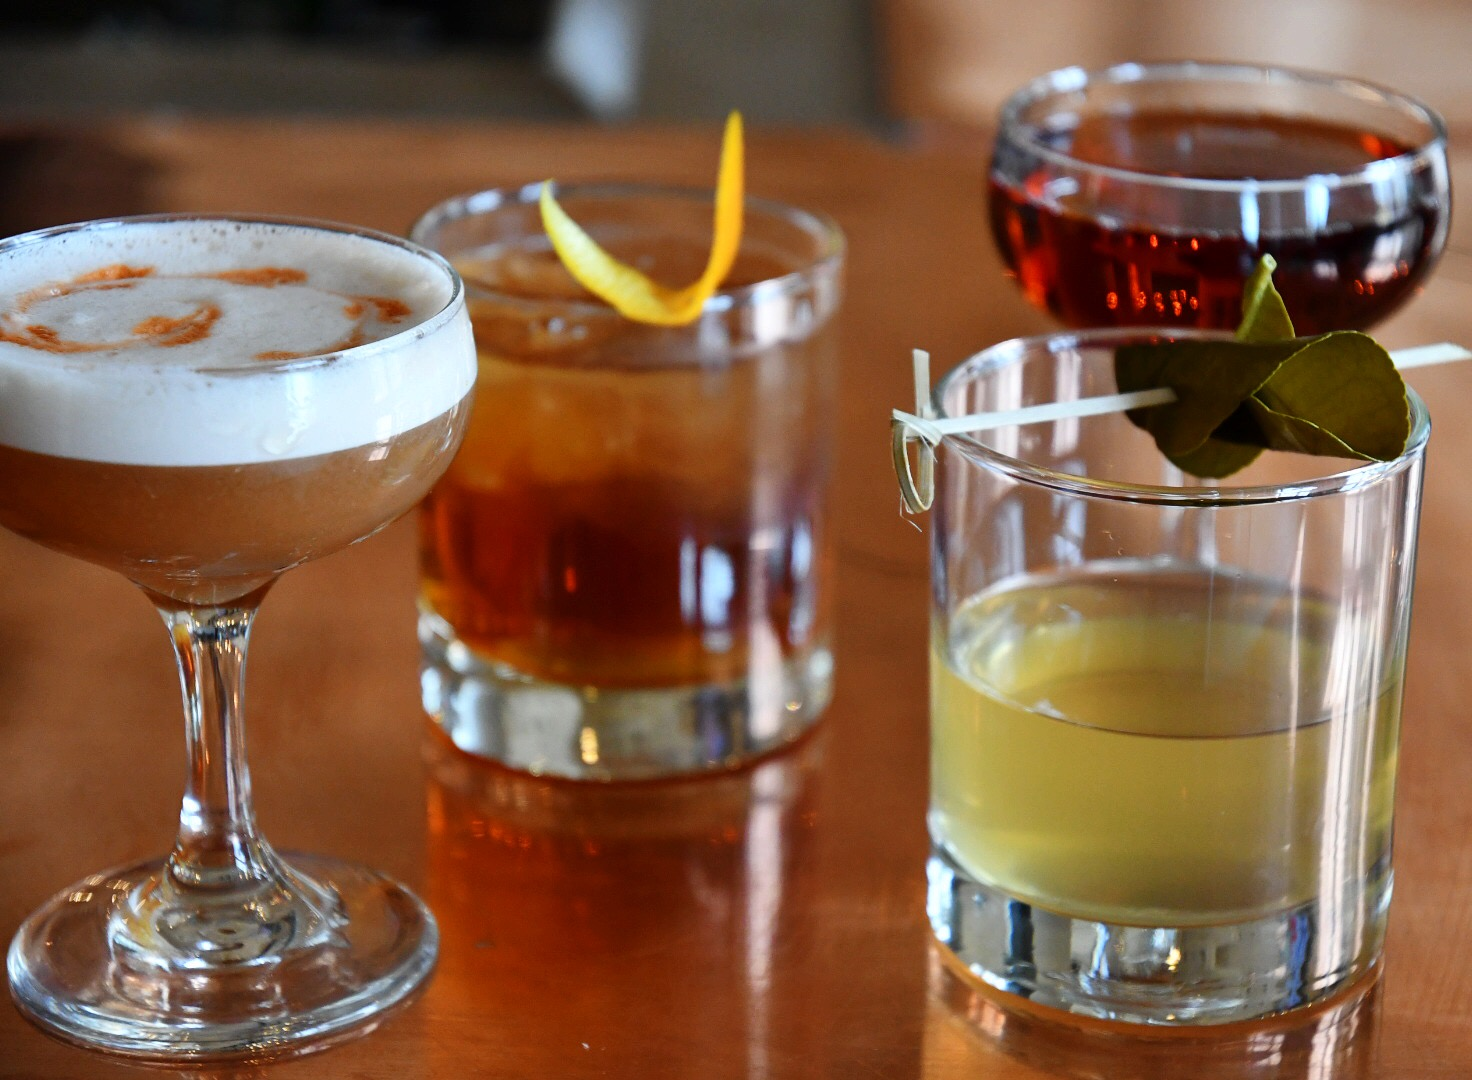 10.29.18_CharityCocktails_Group.JPG